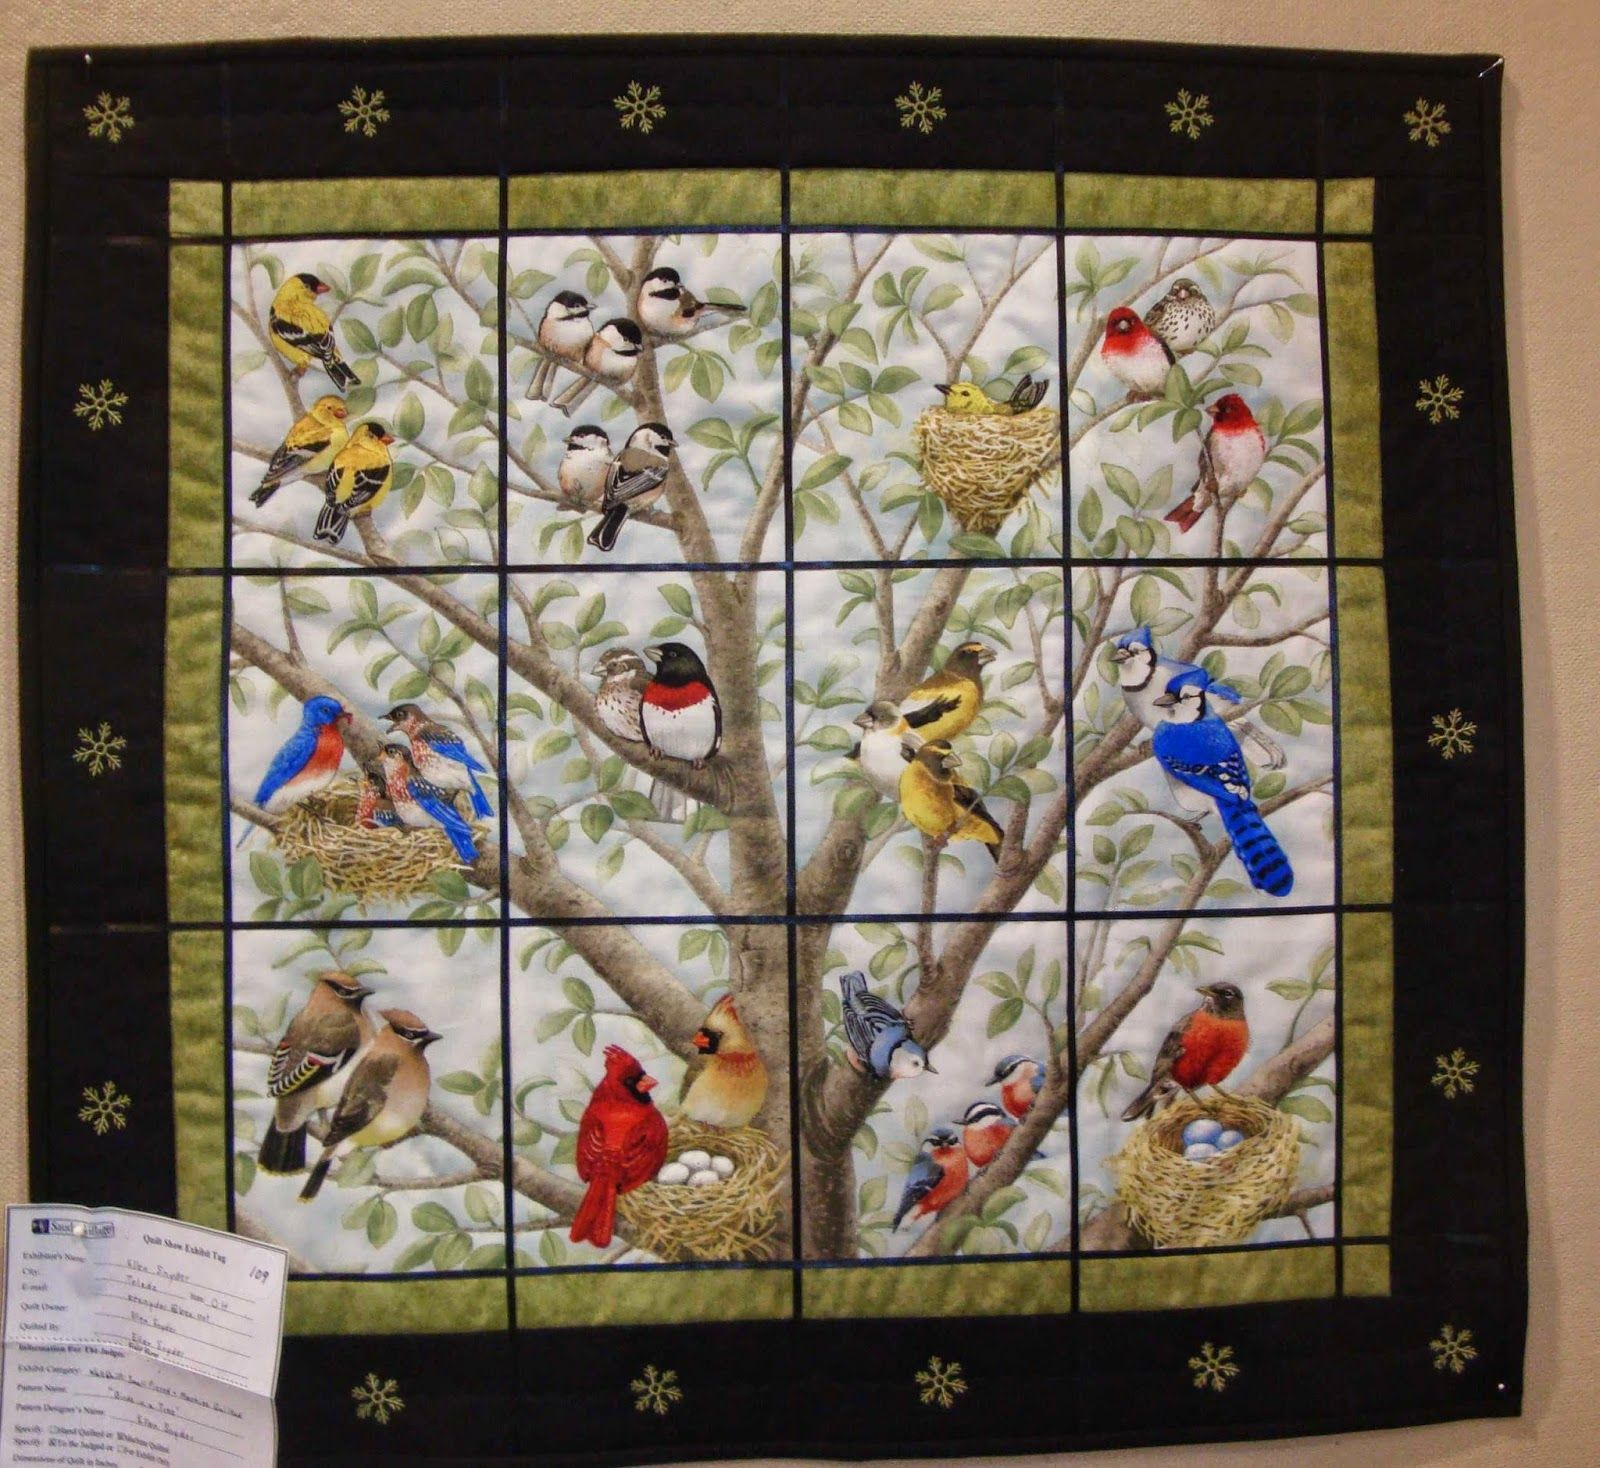 FABRIC THERAPY: 2014 Sauder Village Quilt Show, Part Four ... : sauder village quilt show - Adamdwight.com